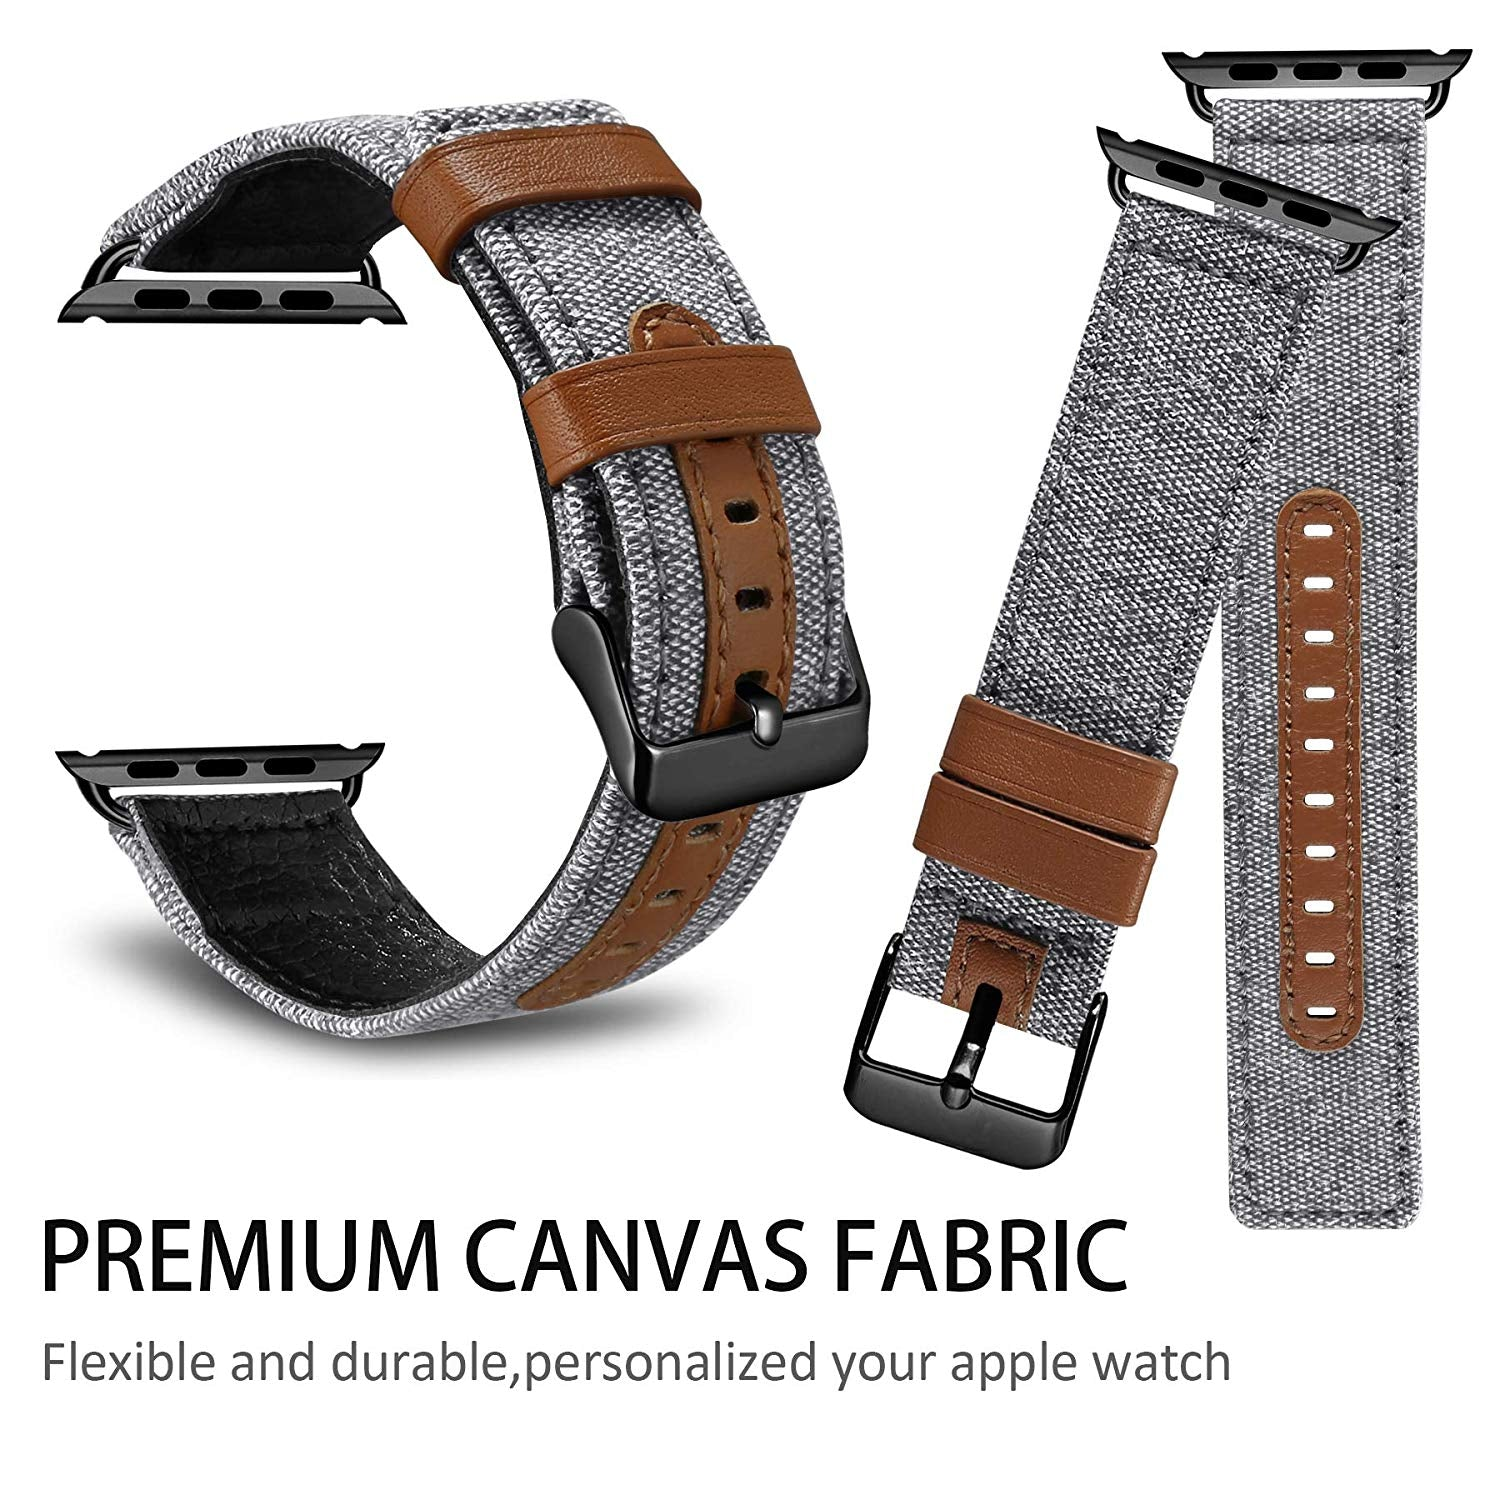 Apple Watch Bands 38mm 40mm 42mm 44mm Straps Elegant Denim Fabric with Genuine Leather